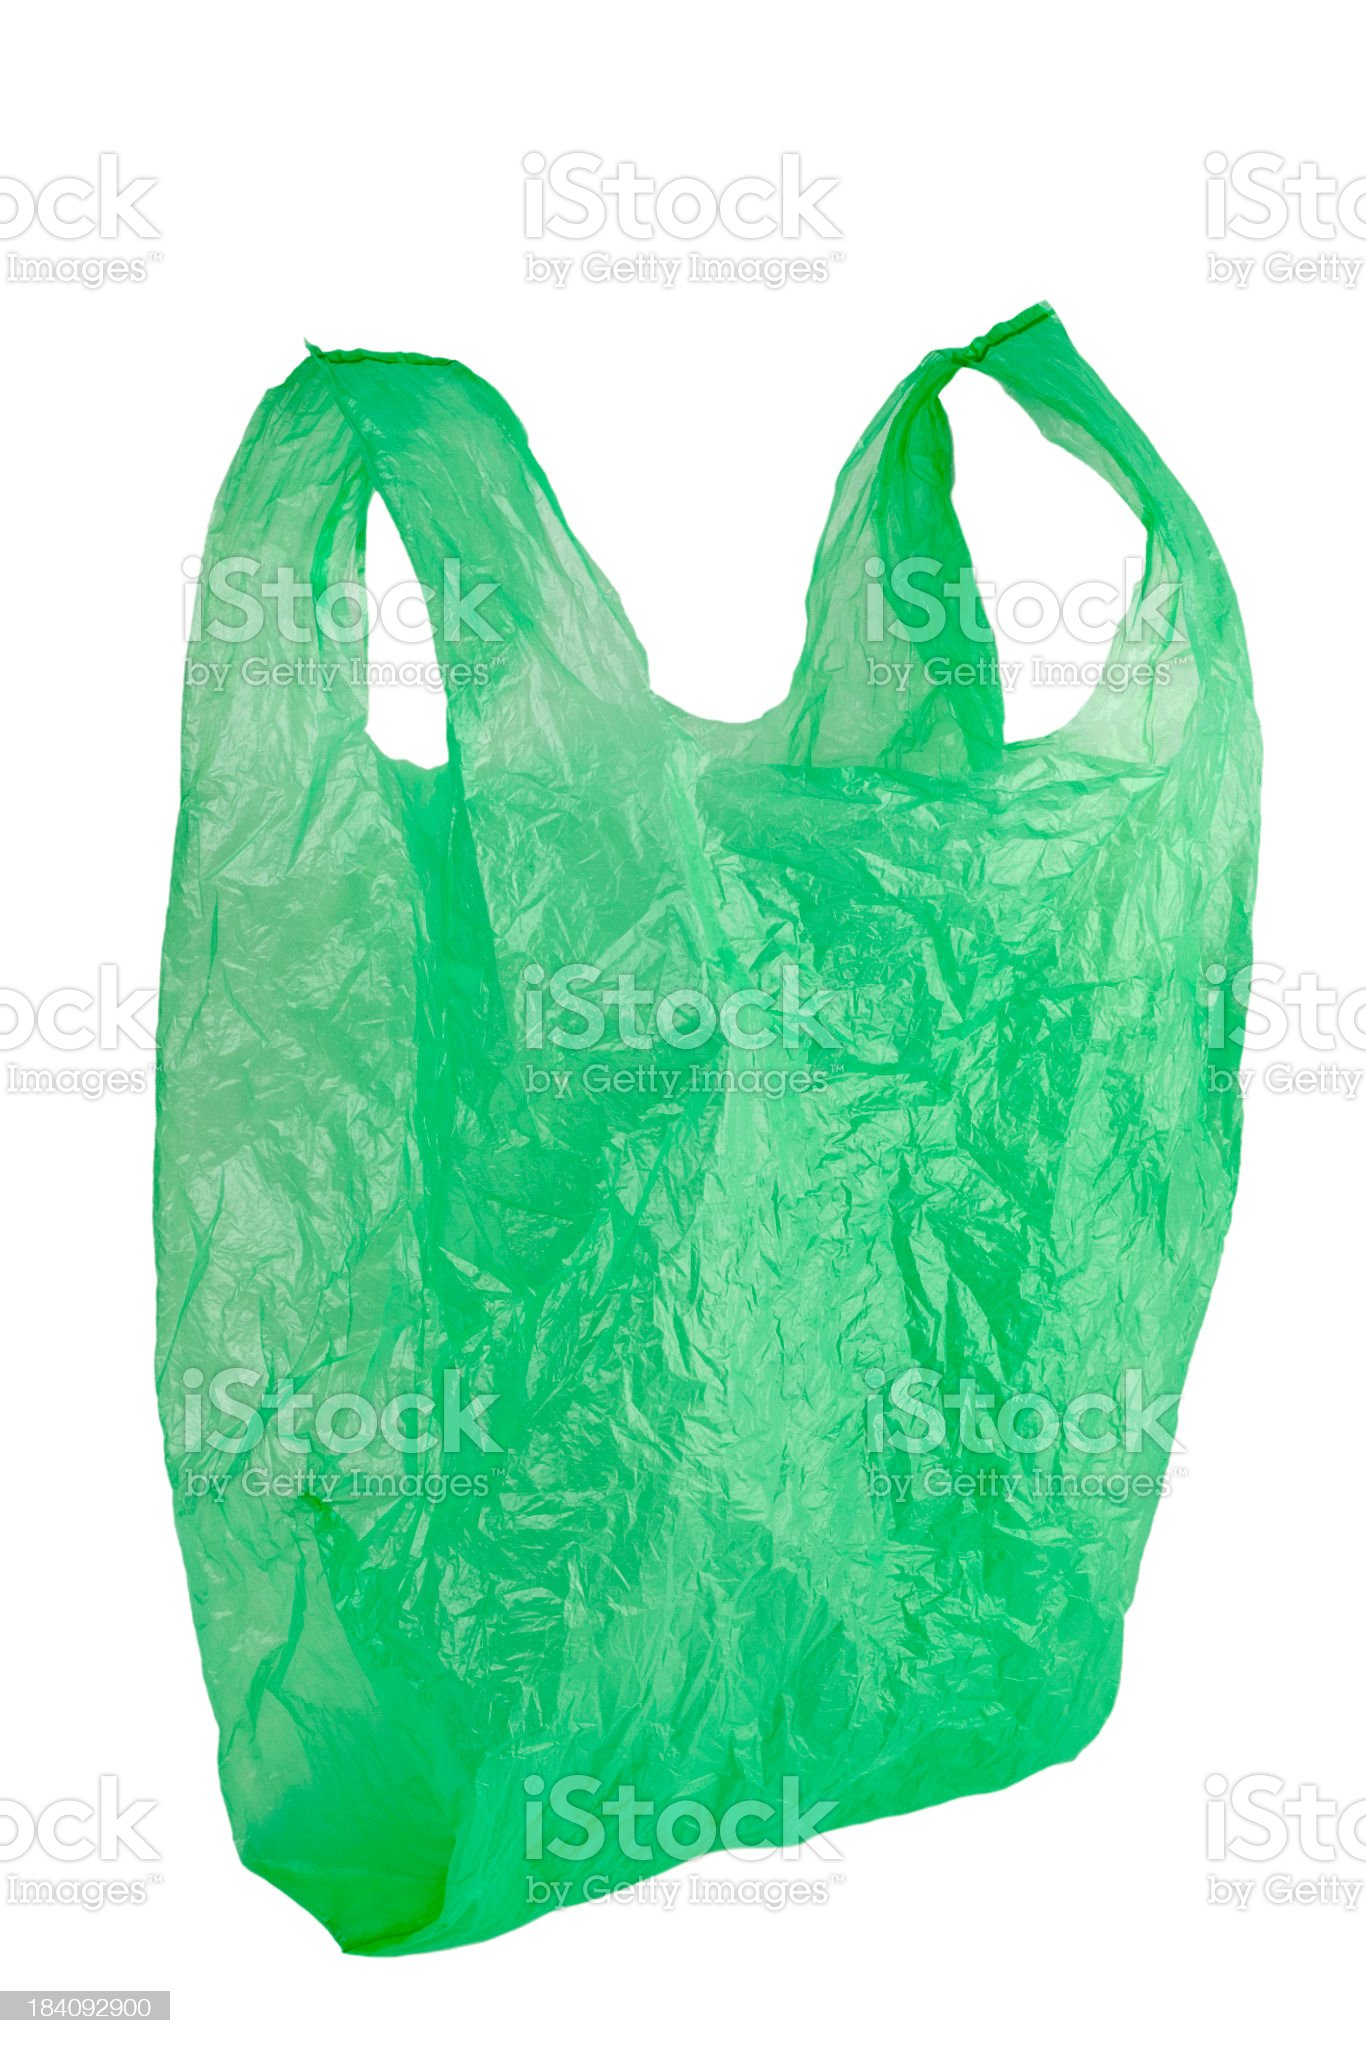 green plastic bag royalty-free stock photo